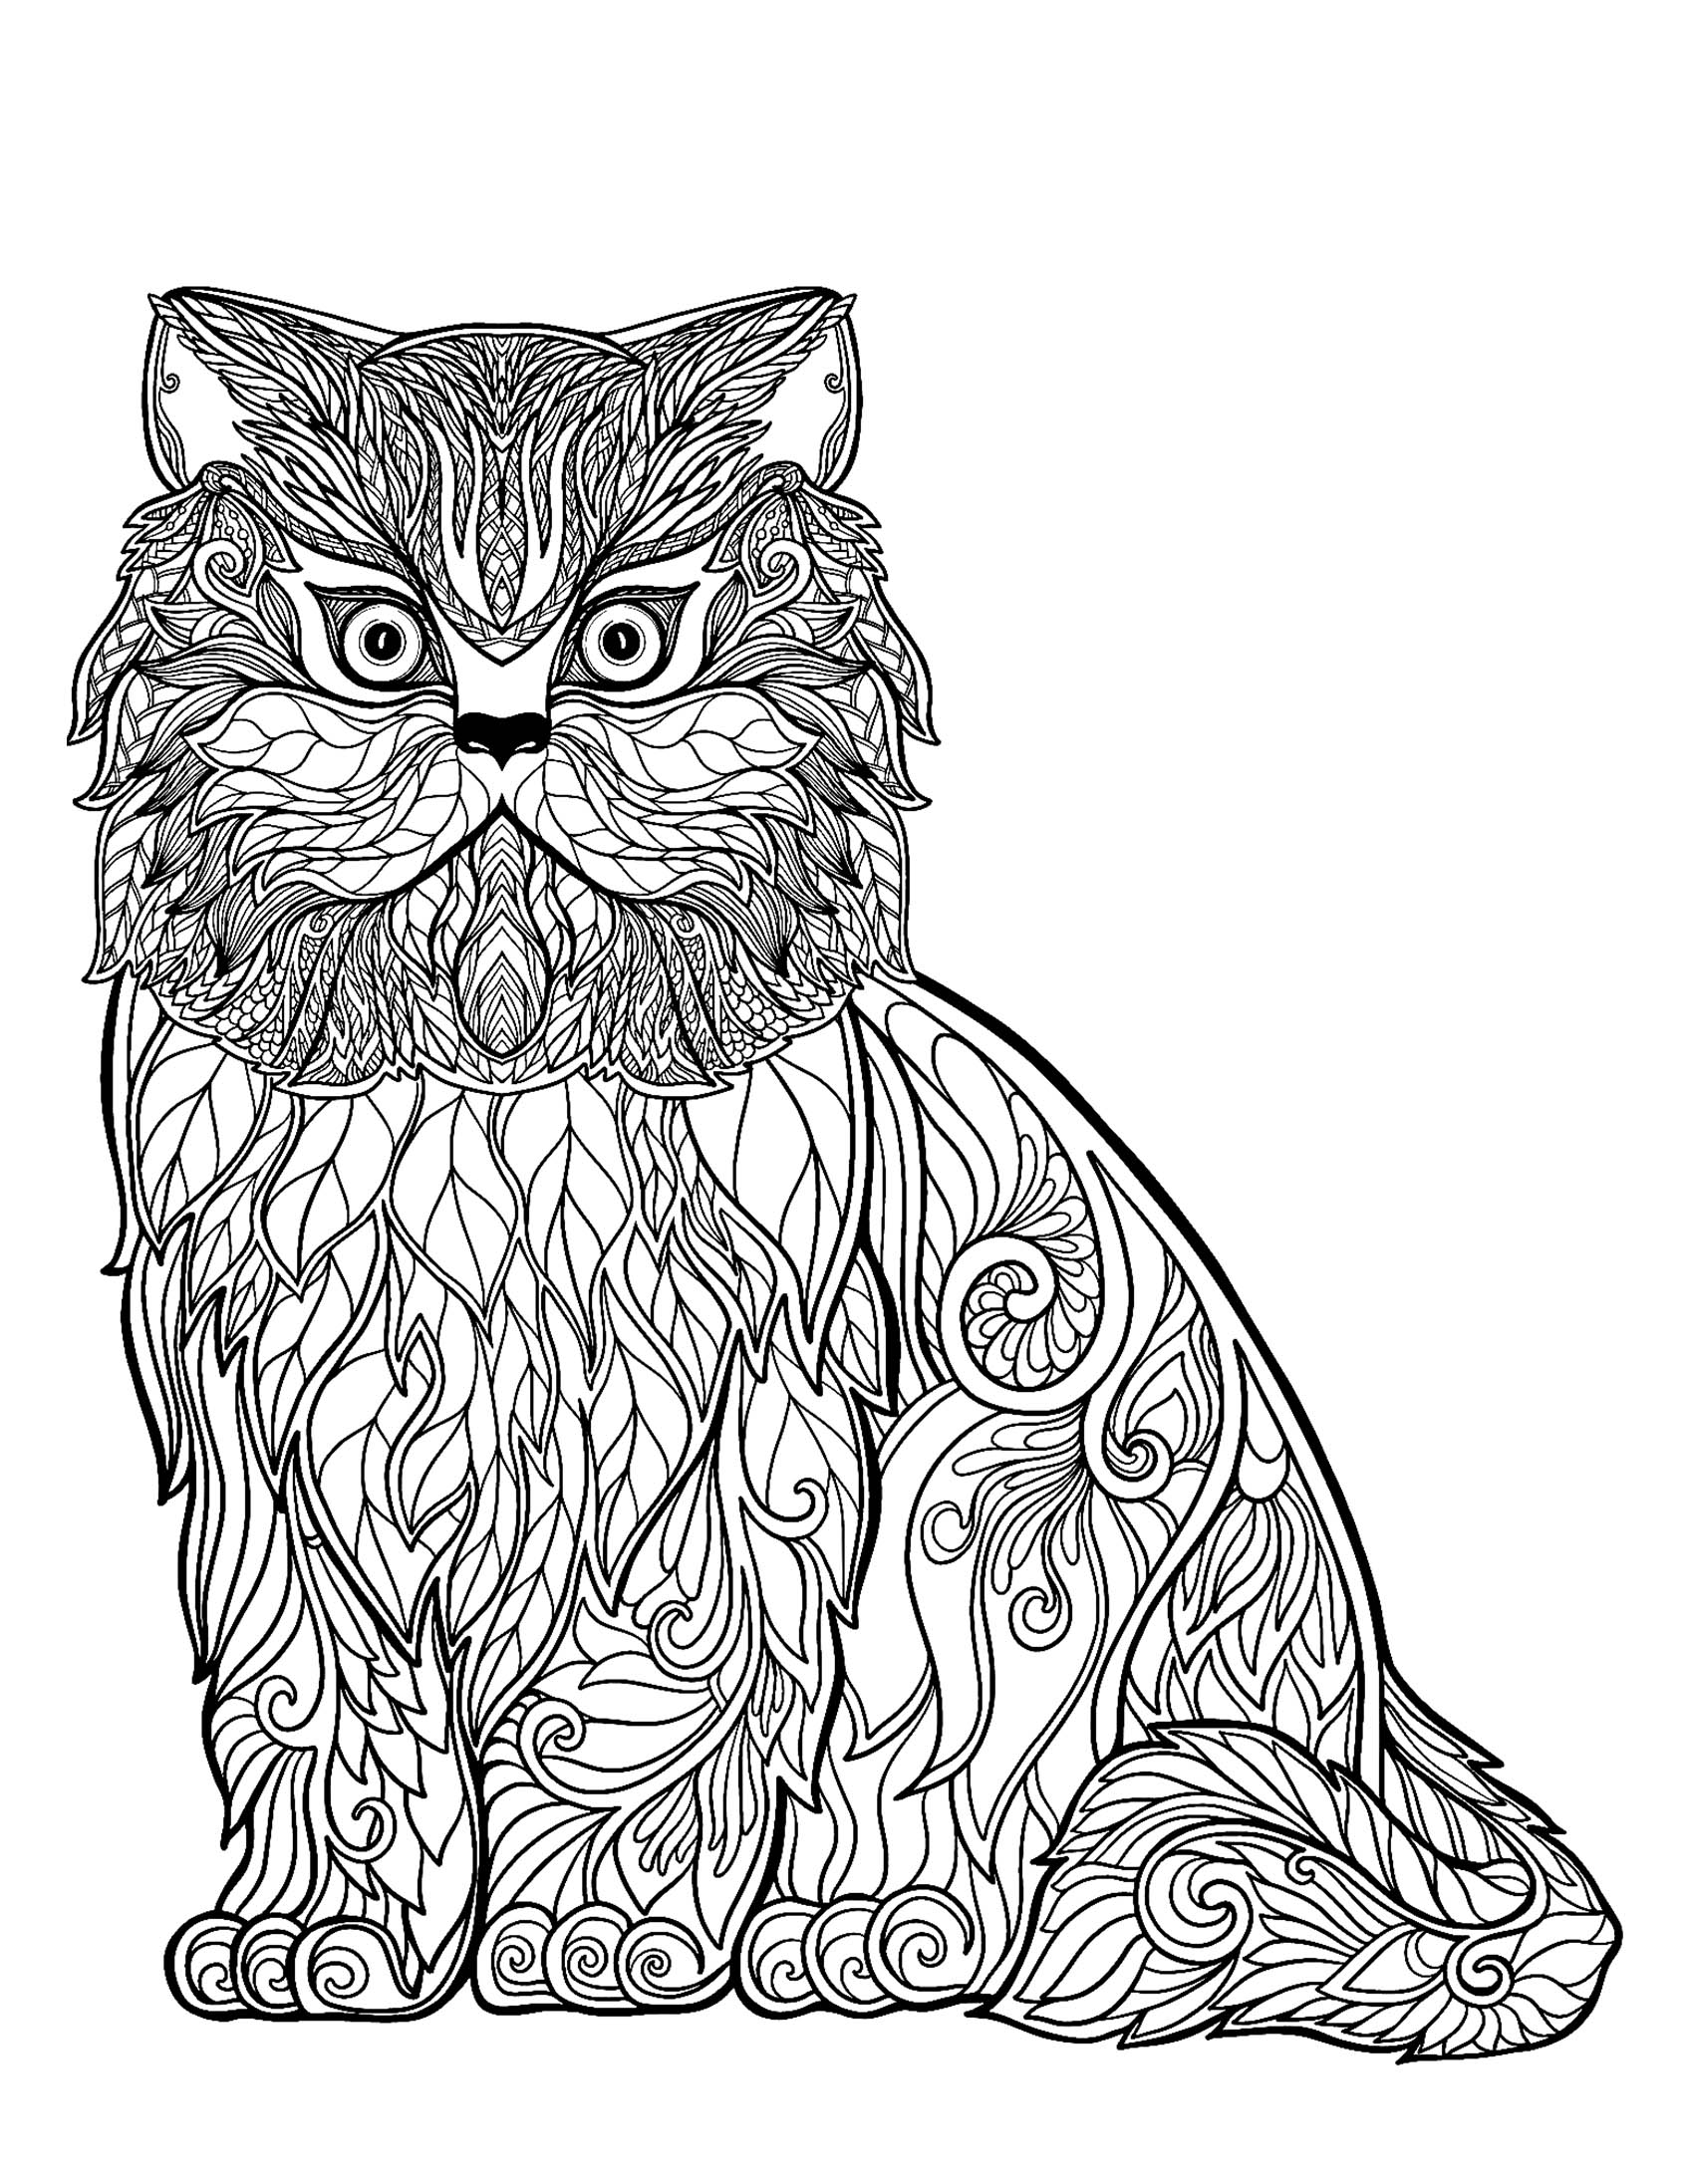 colouring pages cats free printable cat coloring pages for kids cats colouring pages